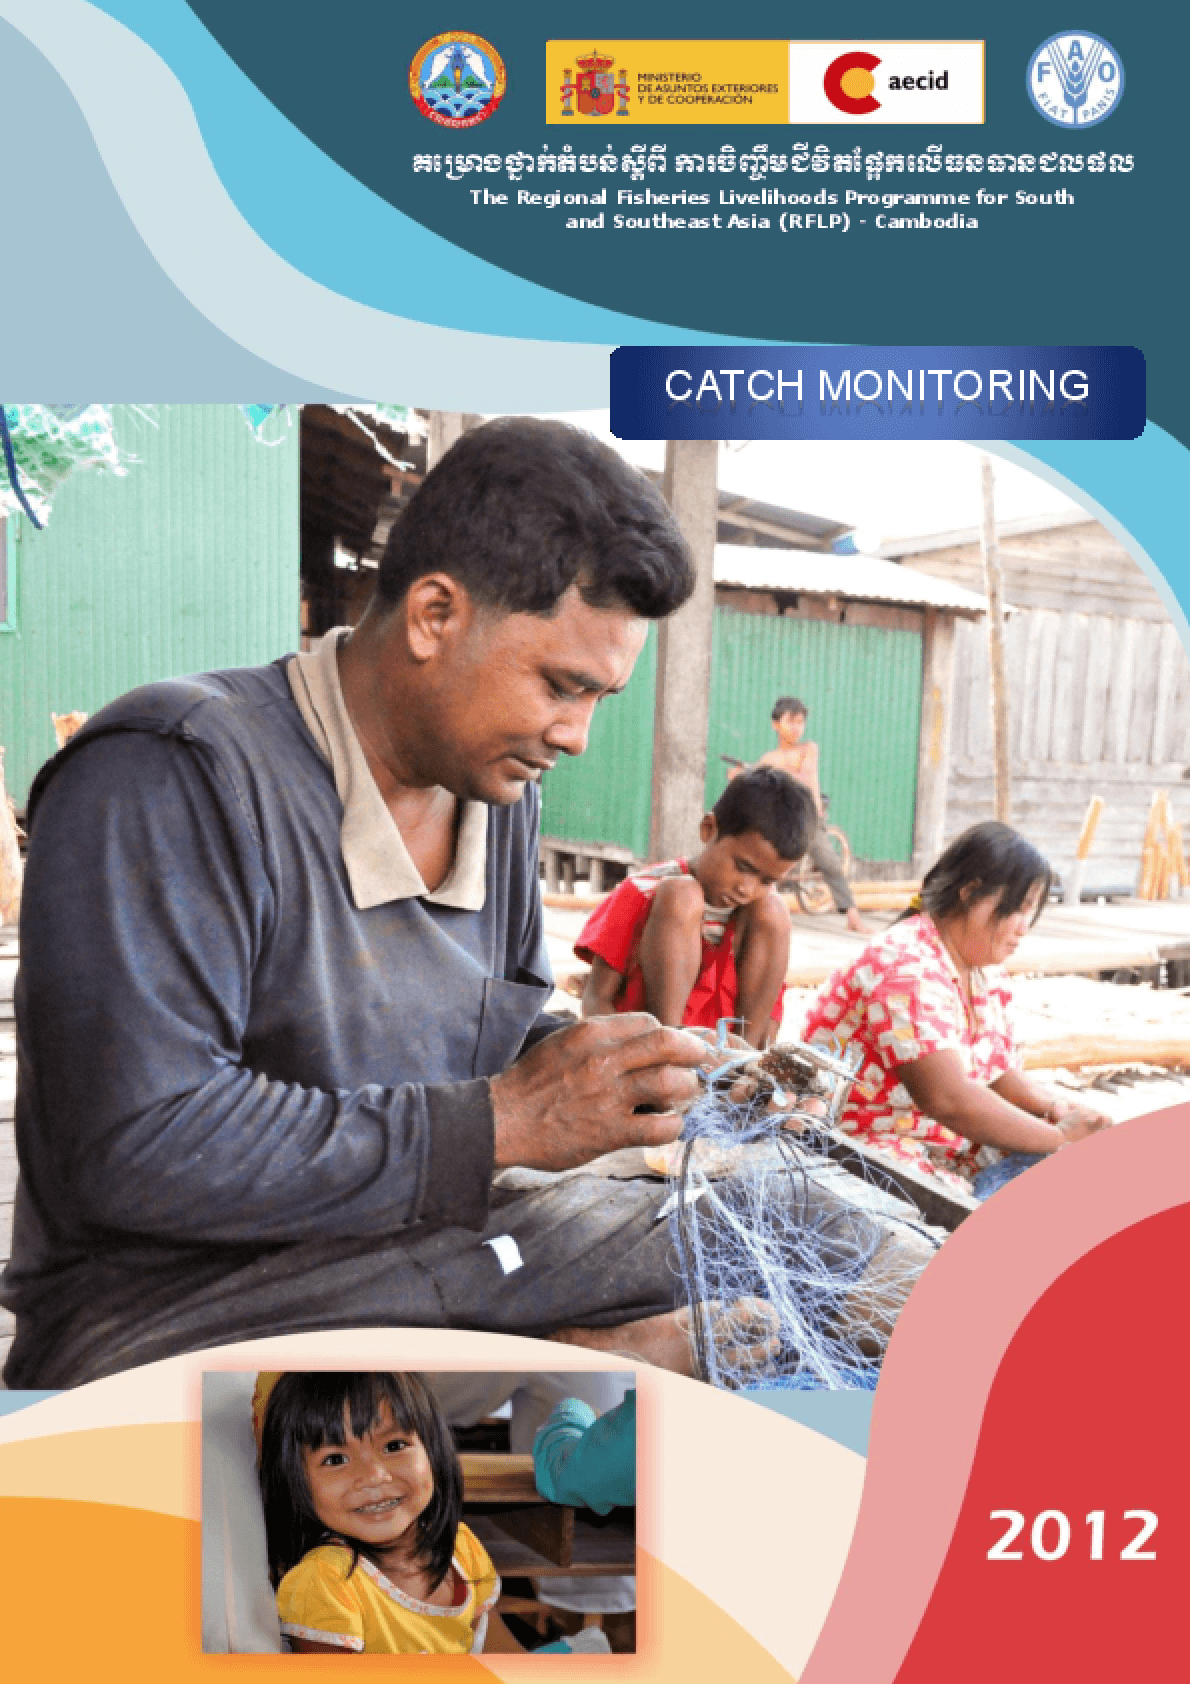 Regional Fisheries Livelihoods Programme for South and Southeast Asia (RFLP) Activity 1.5 (2011): Systems and Procedures for Participatory Monitoring of Management Measures Developed, Introduced and Implemented-catch Monitoring